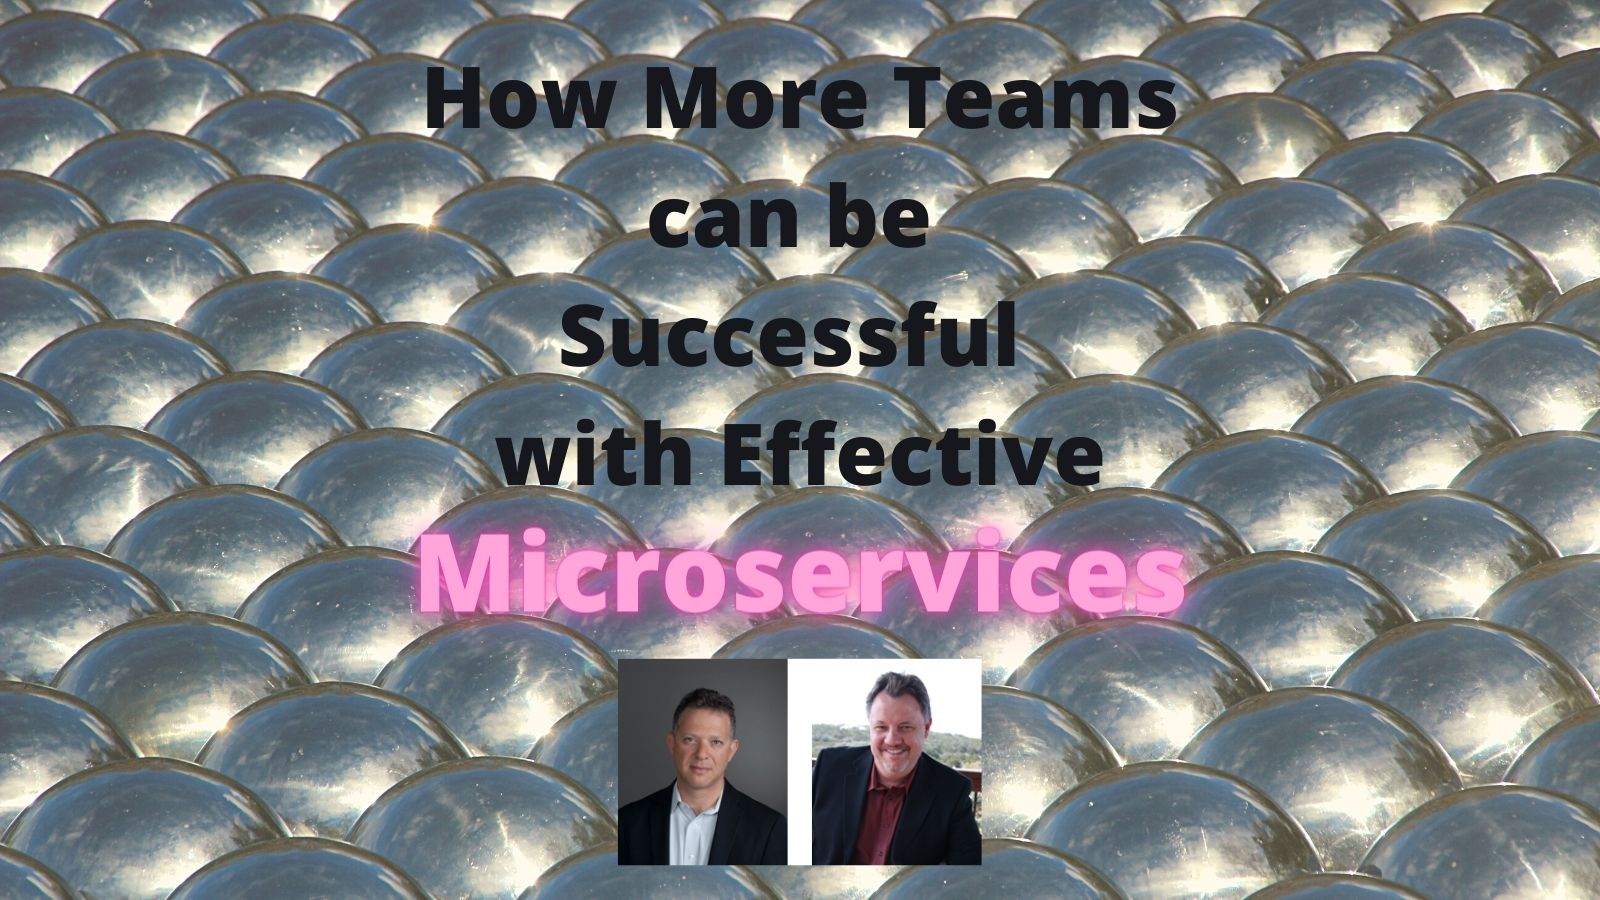 Microservices with Isaac Sacolick